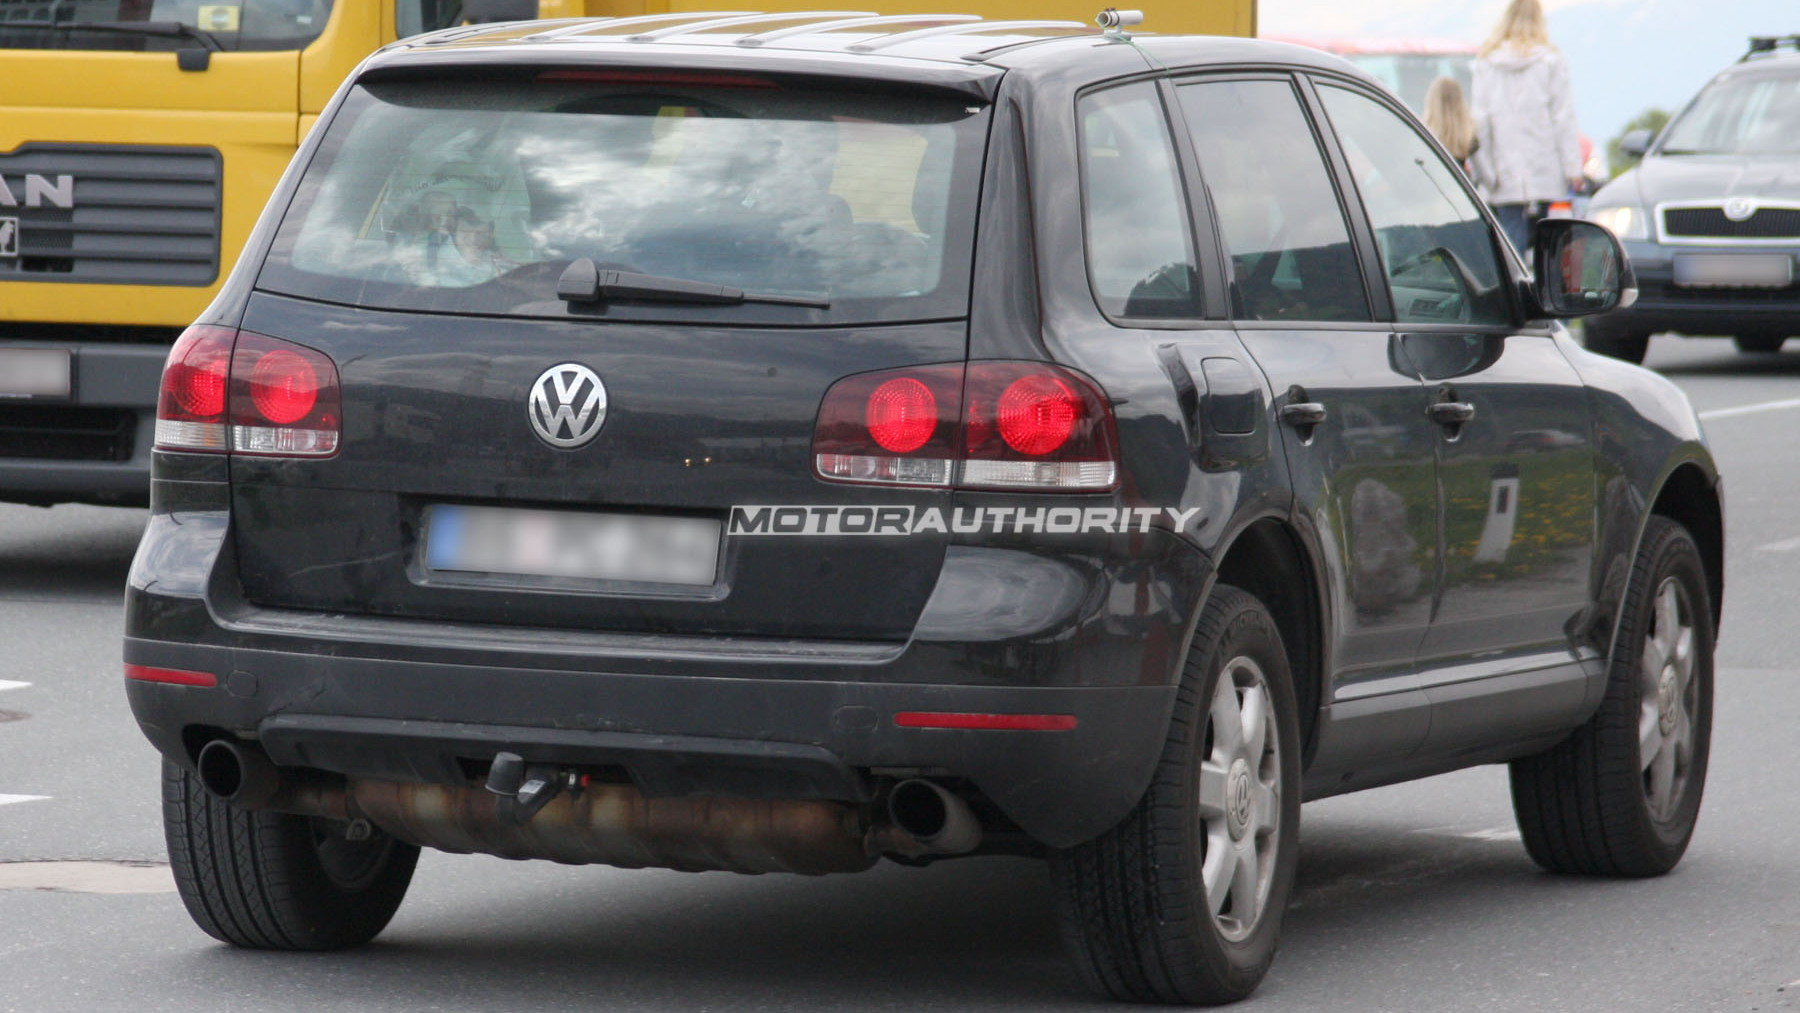 2011 volkswagen touareg test mule spy shots may 006